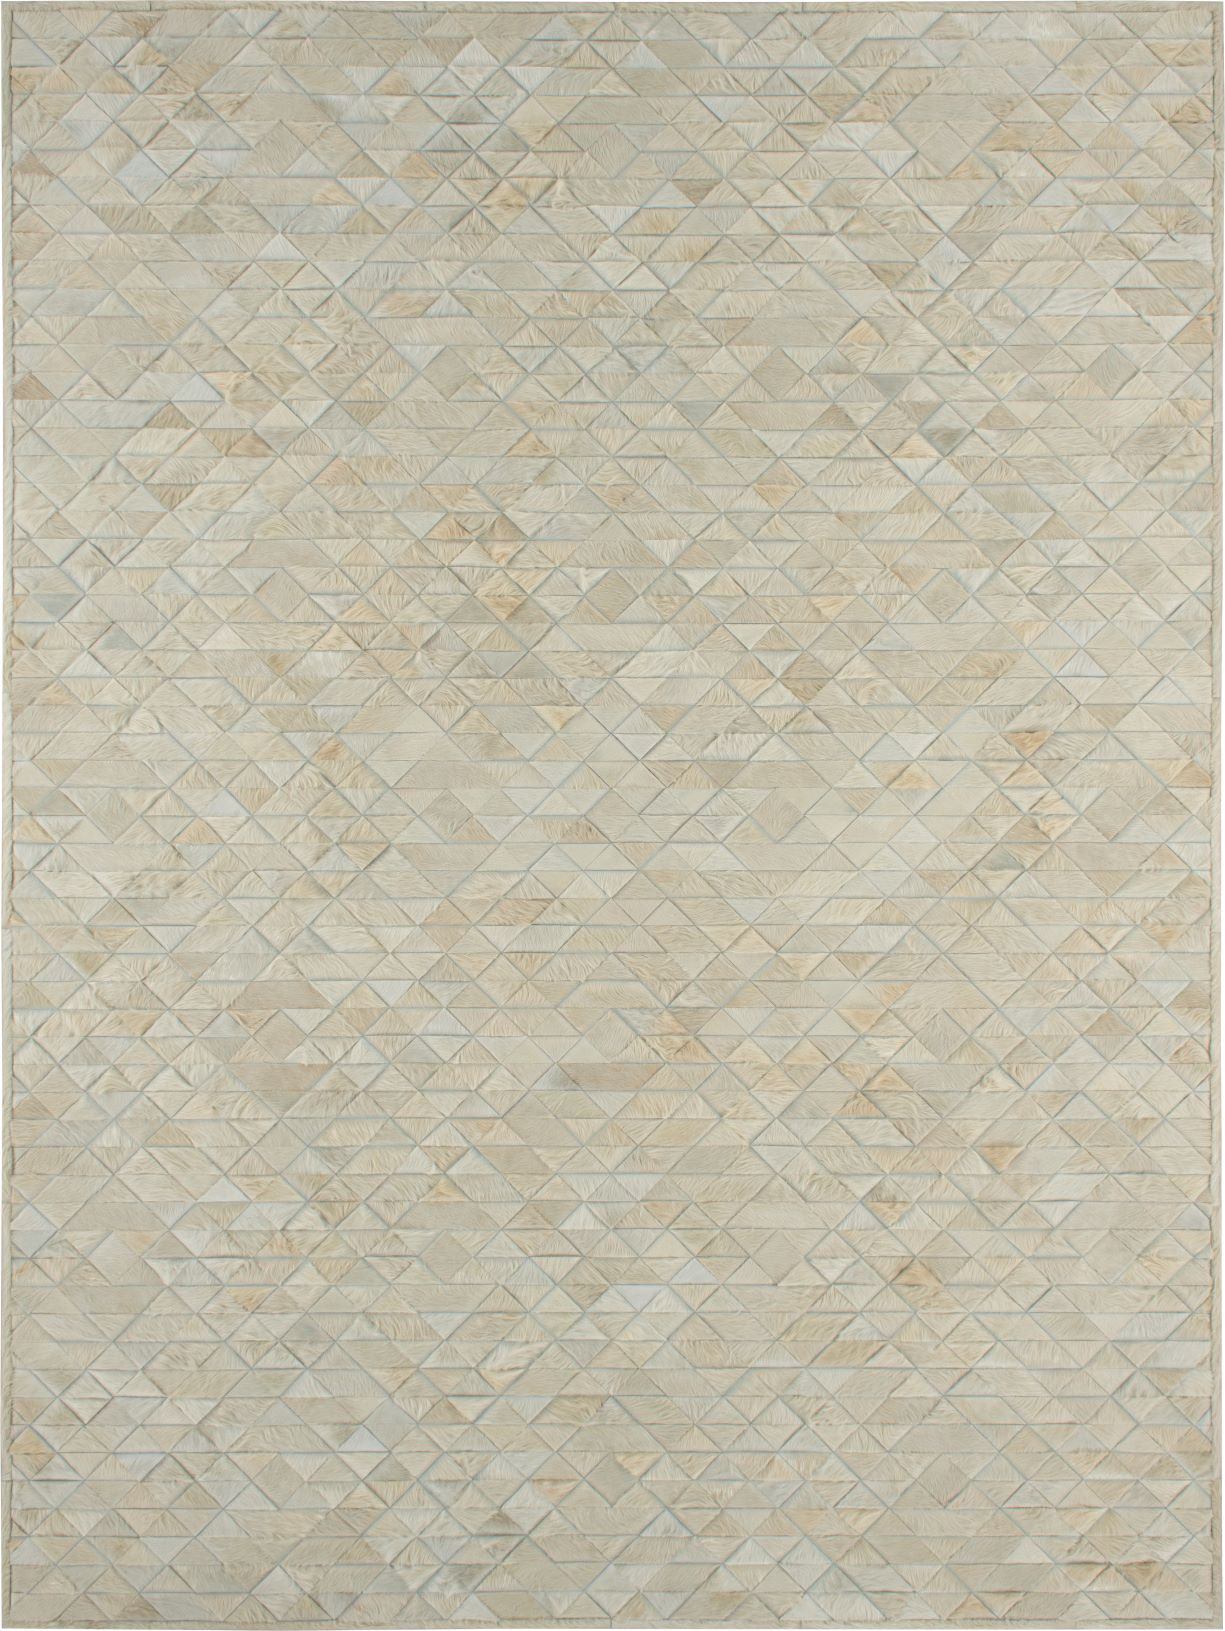 9' x 12' Area Rug - Cream Geometric